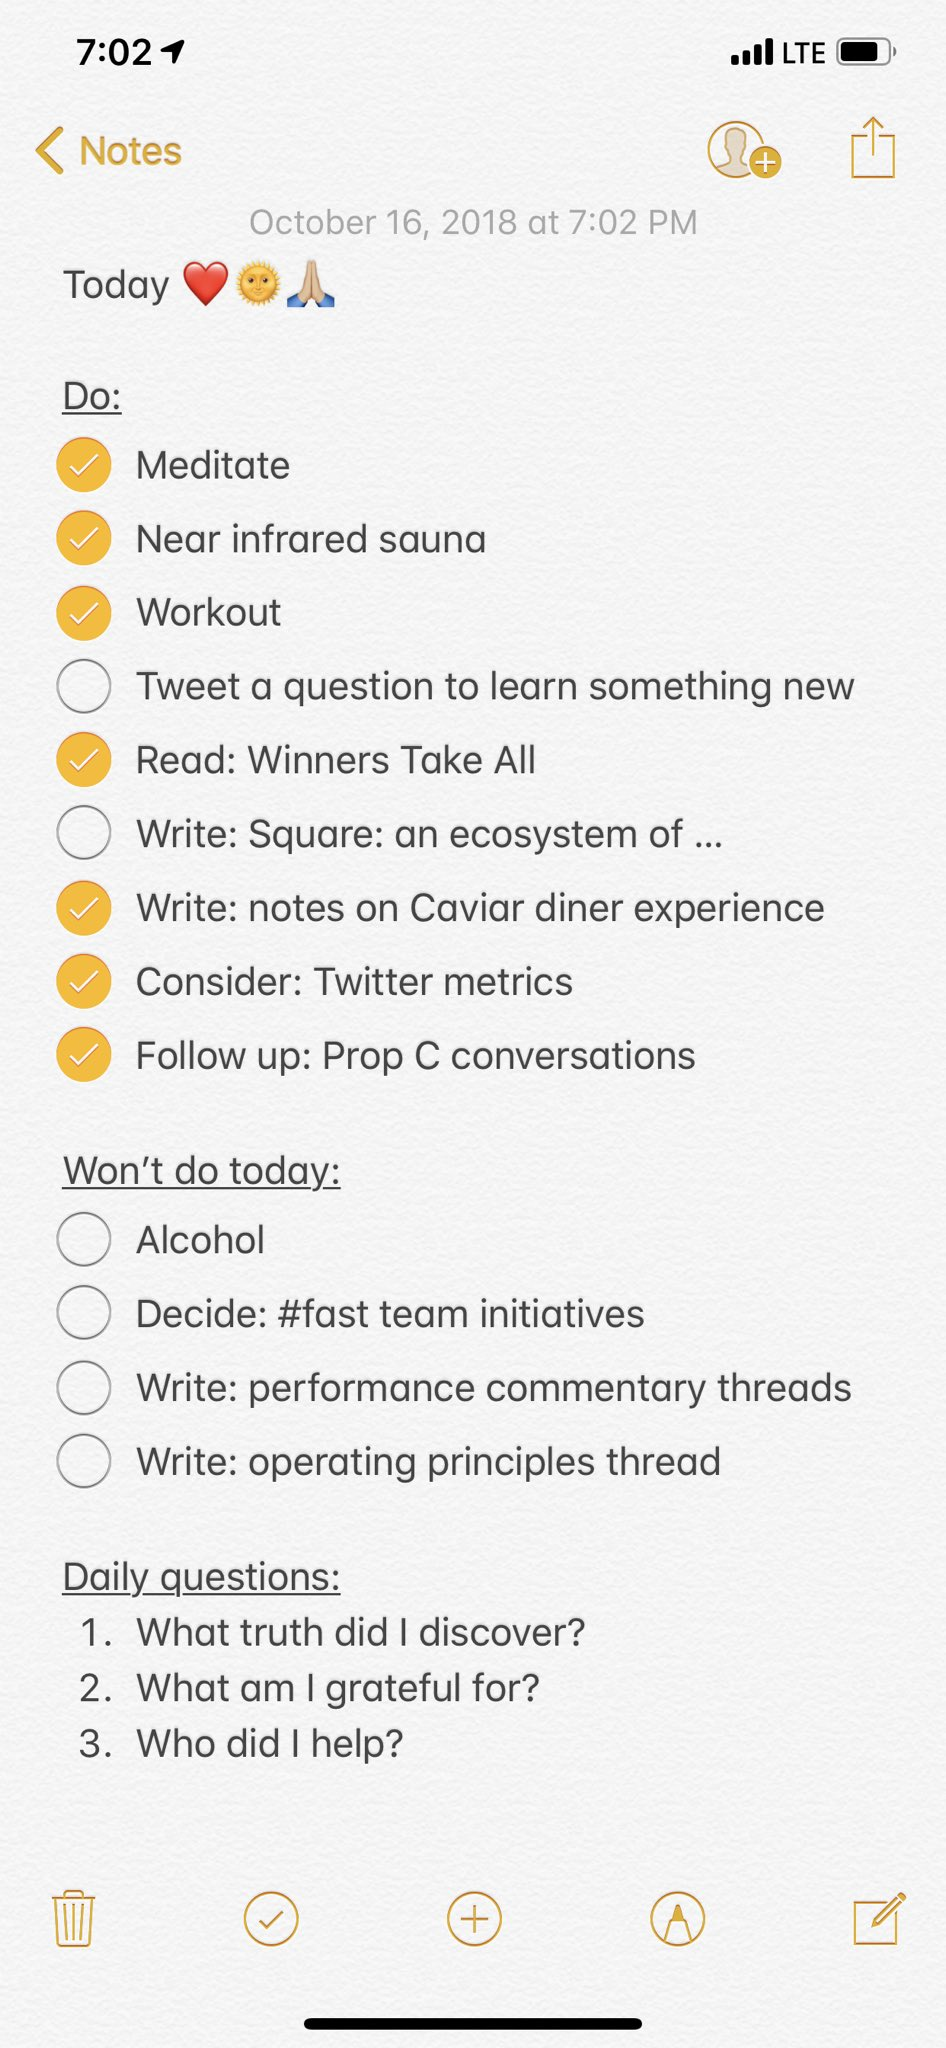 twitter ceo jack dorsey writes a 'won't do' list every day